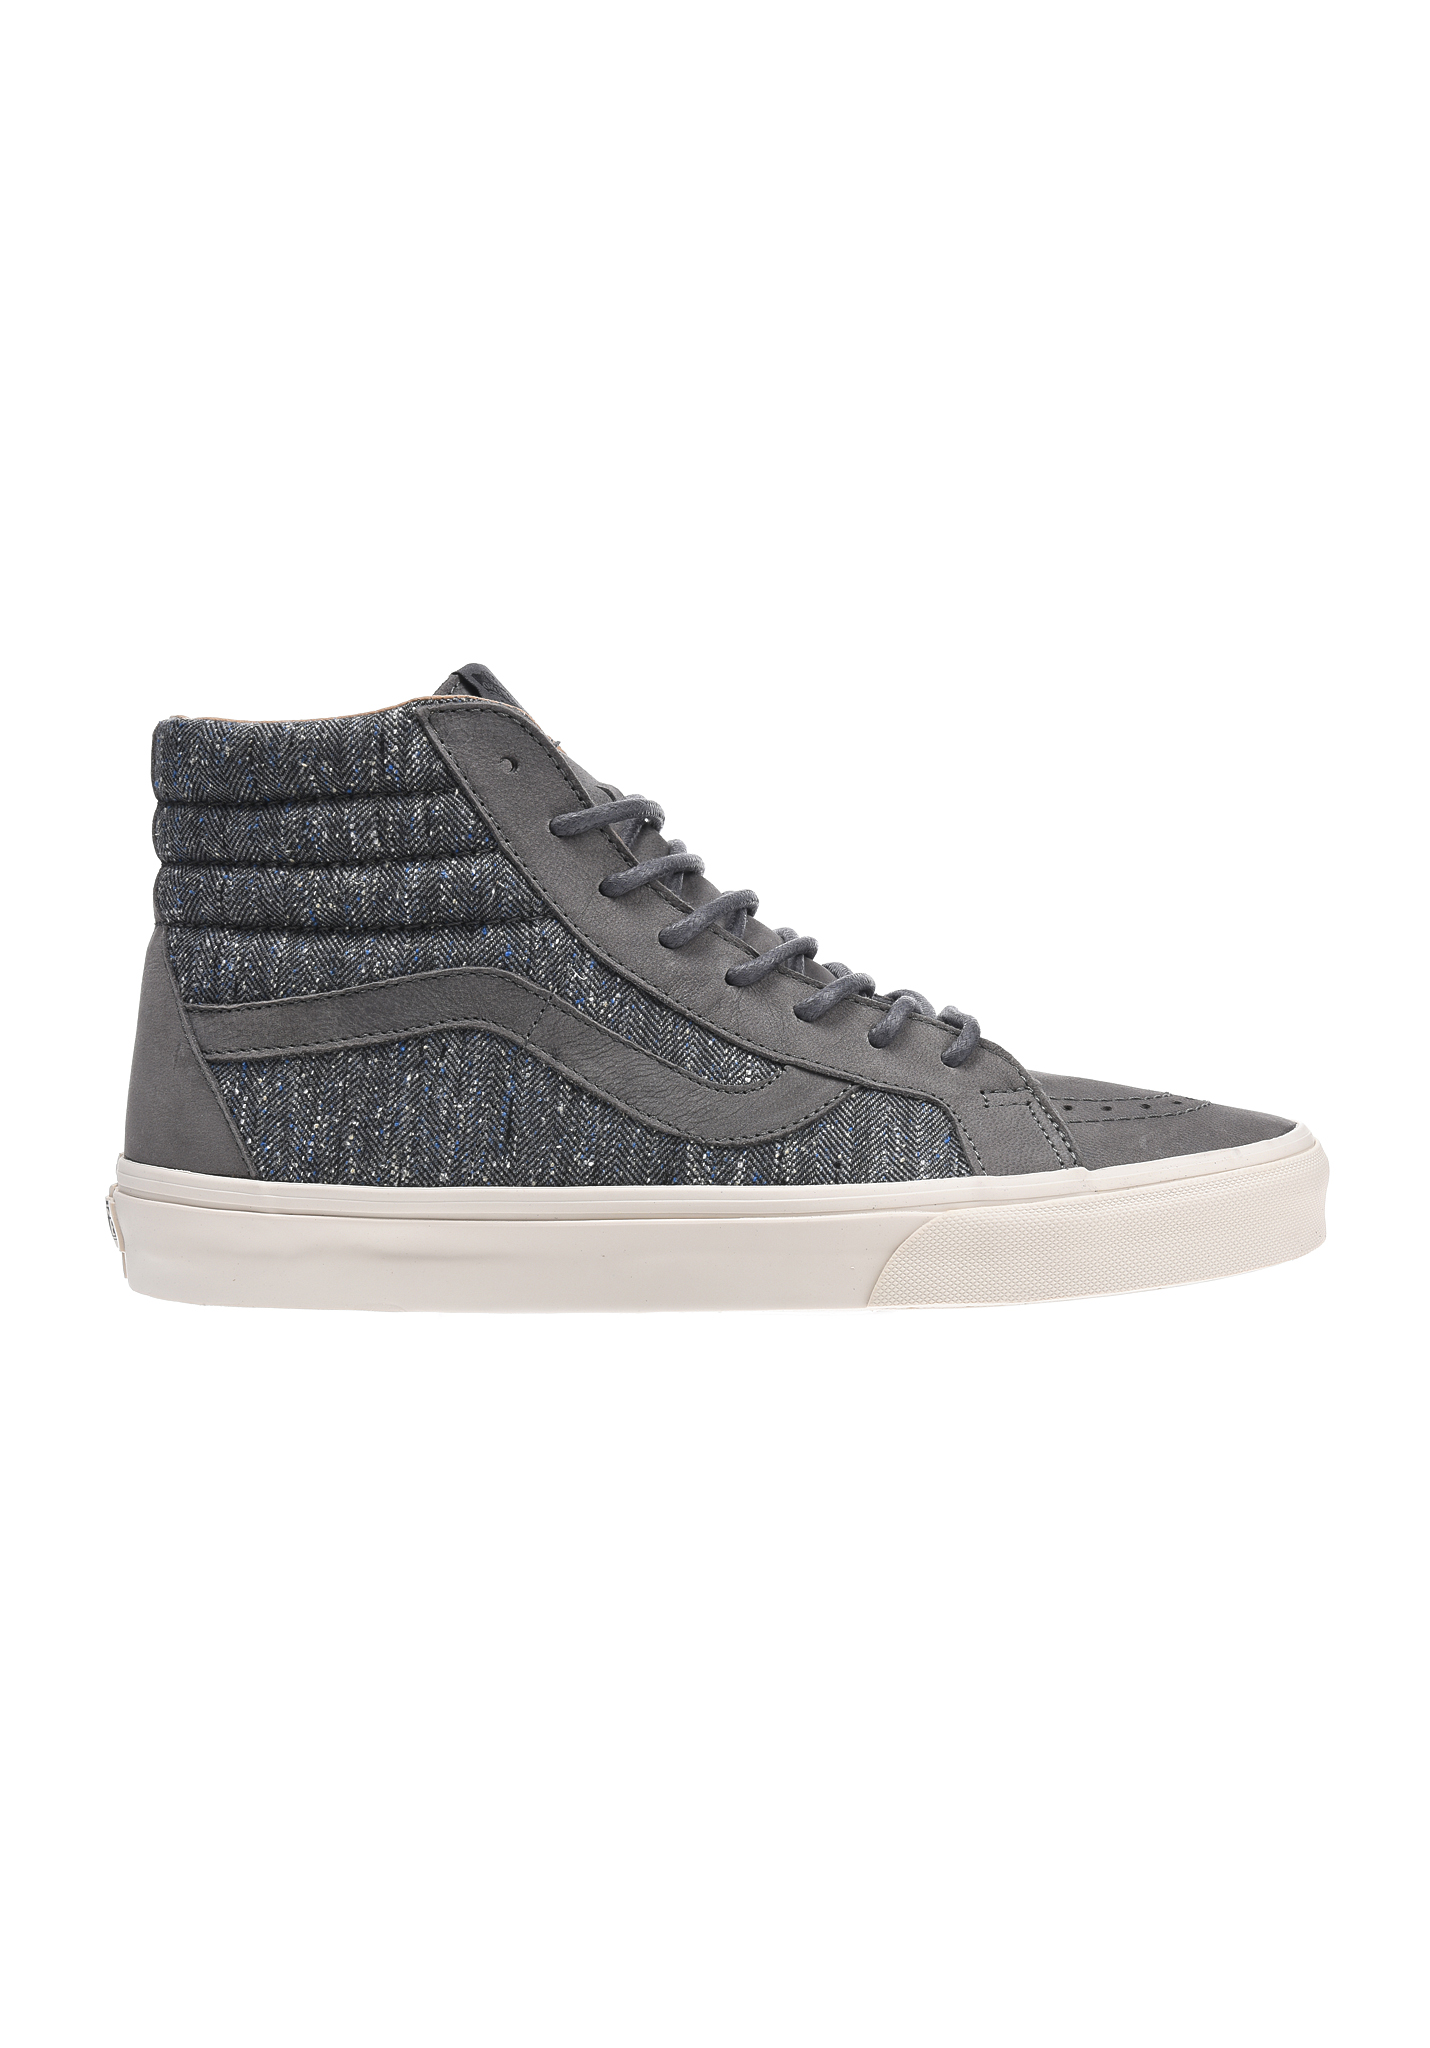 vans sk8 hi reissue dx herren damen sneaker turnschuhe. Black Bedroom Furniture Sets. Home Design Ideas